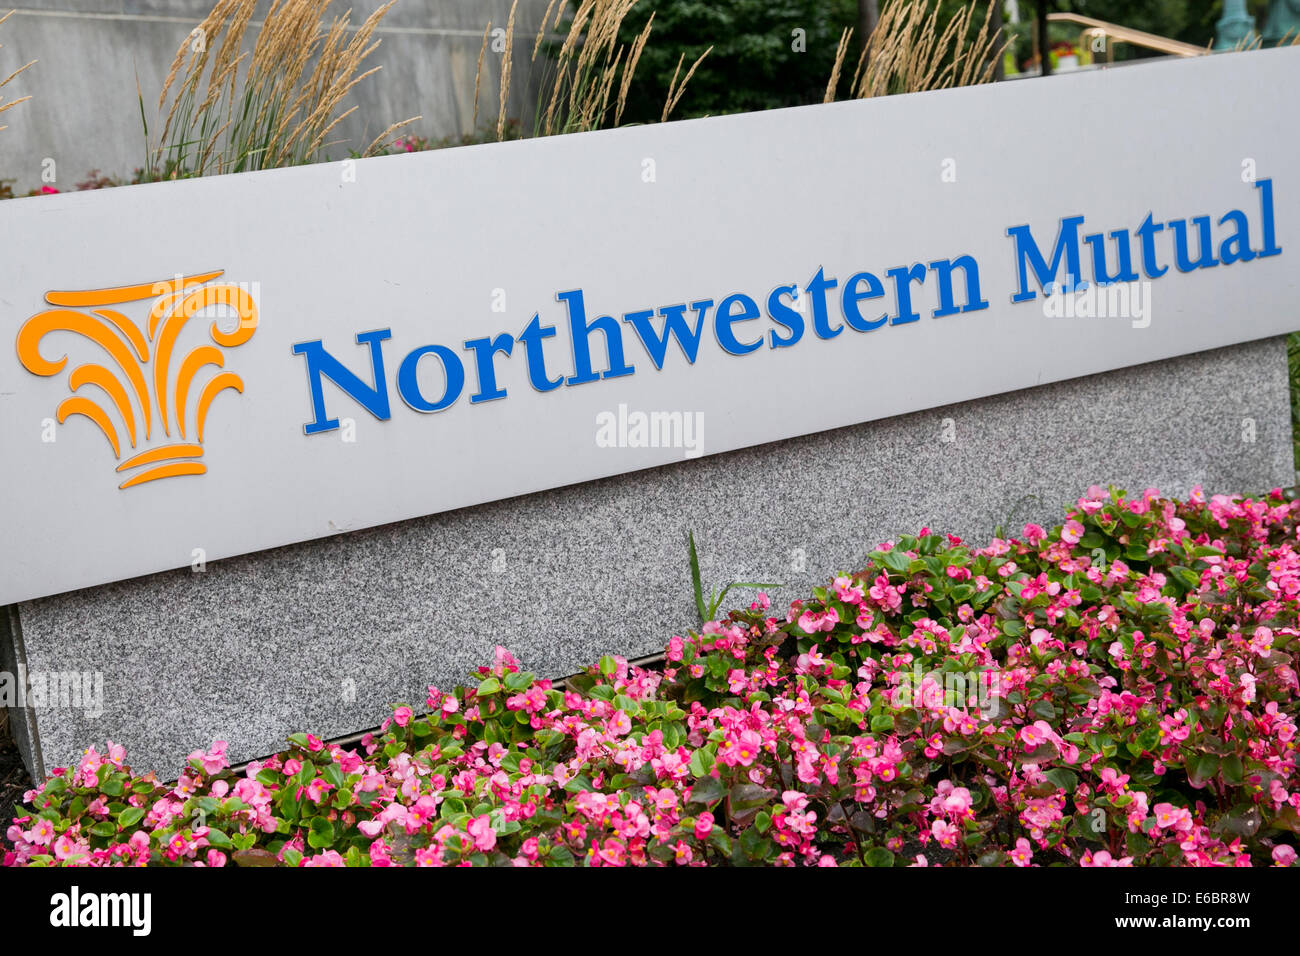 The headquarters of Northwestern Mutual in Milwaukee, Wisconsin. - Stock Image